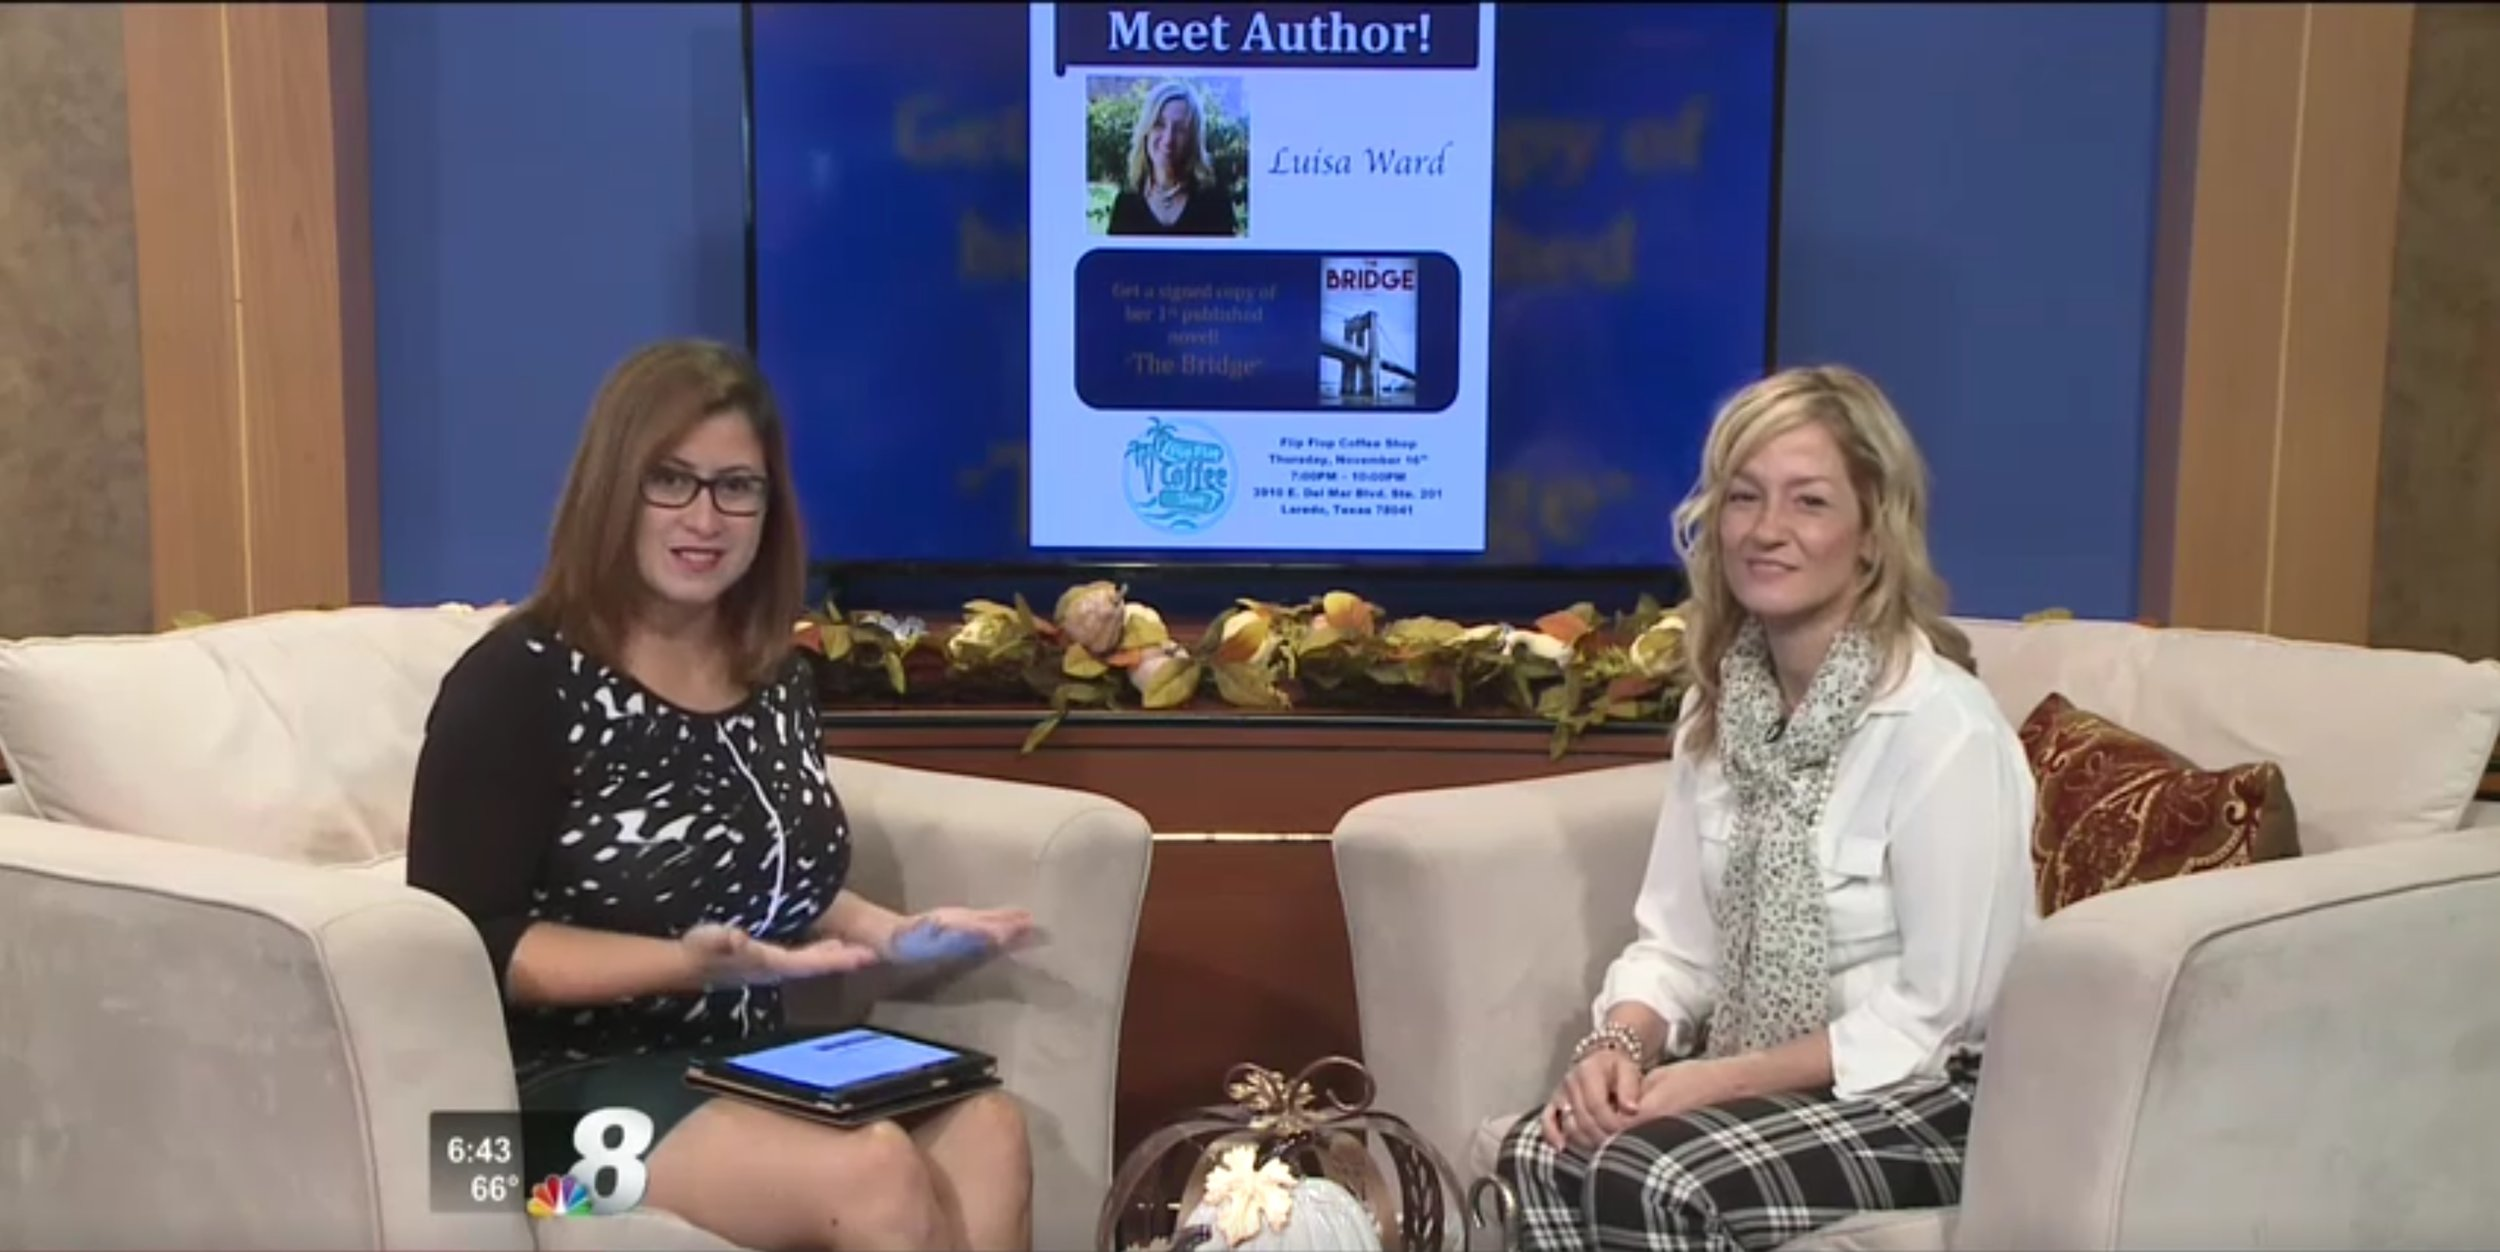 Luisa Ward went on to channel 8 news to do an interview about he book, The Bridge